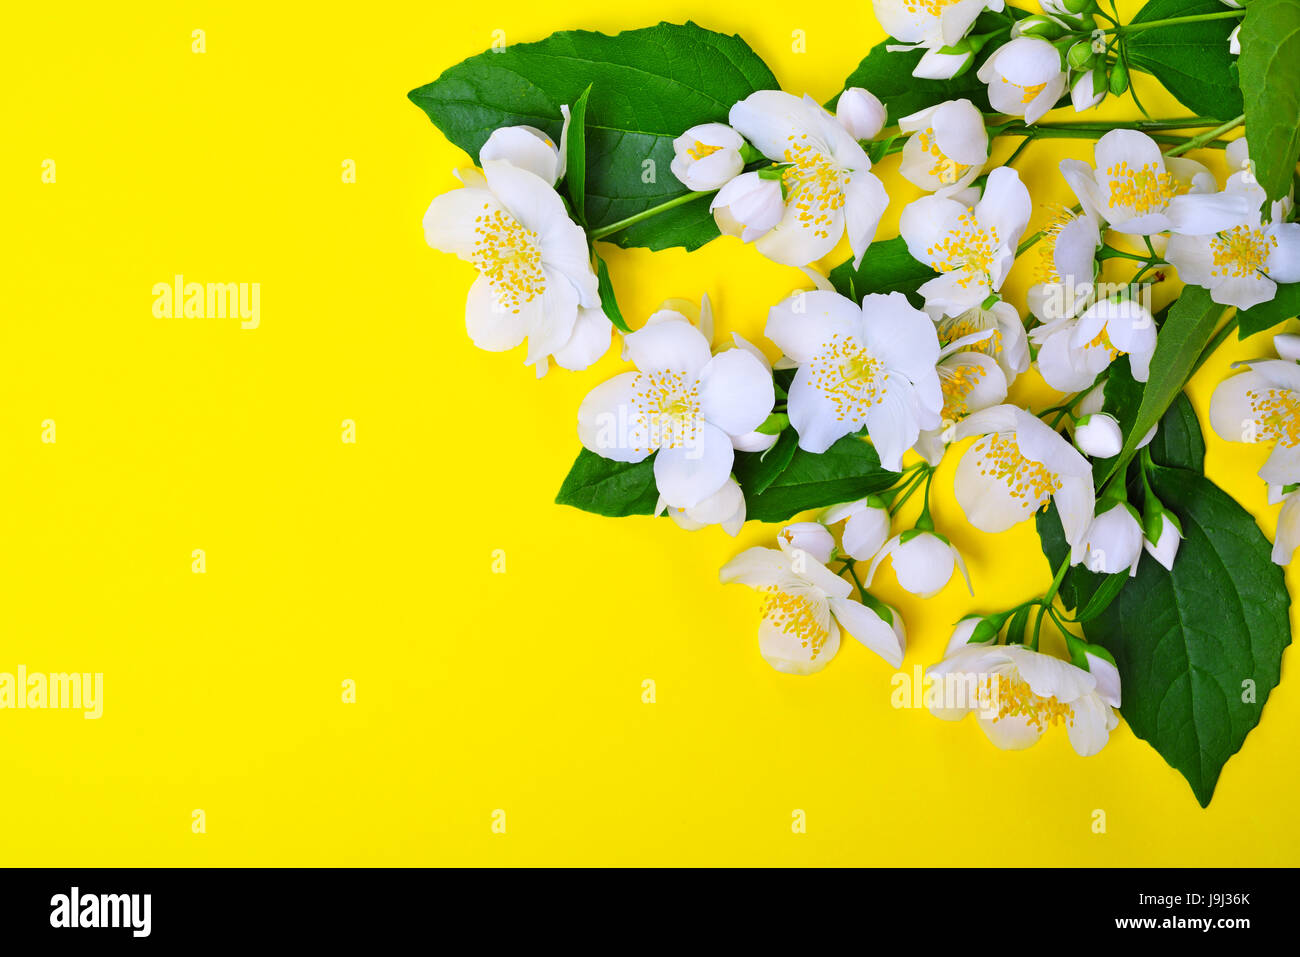 Branches with white jasmine flowers on a yellow background empty branches with white jasmine flowers on a yellow background empty space on the left izmirmasajfo Images